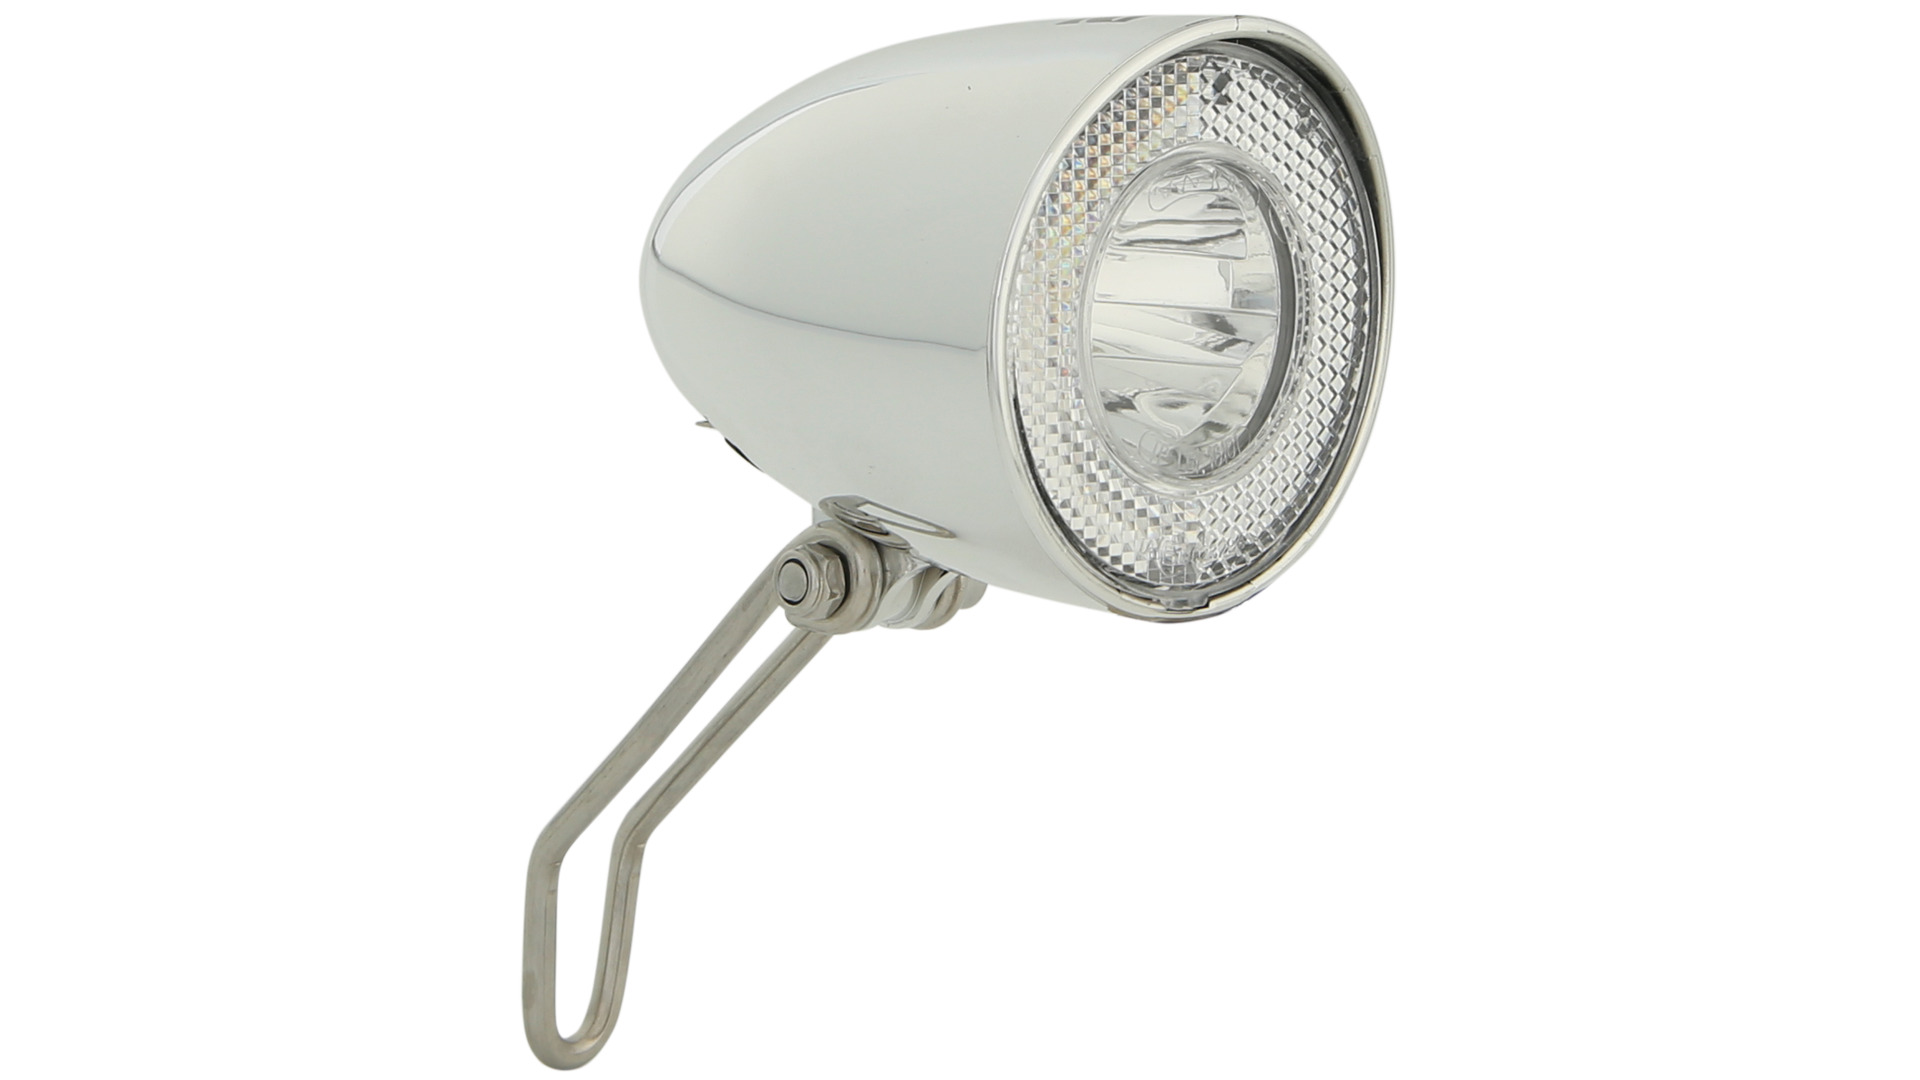 Contec Headlight Retro Classic N 20 Lux Switch - Silver